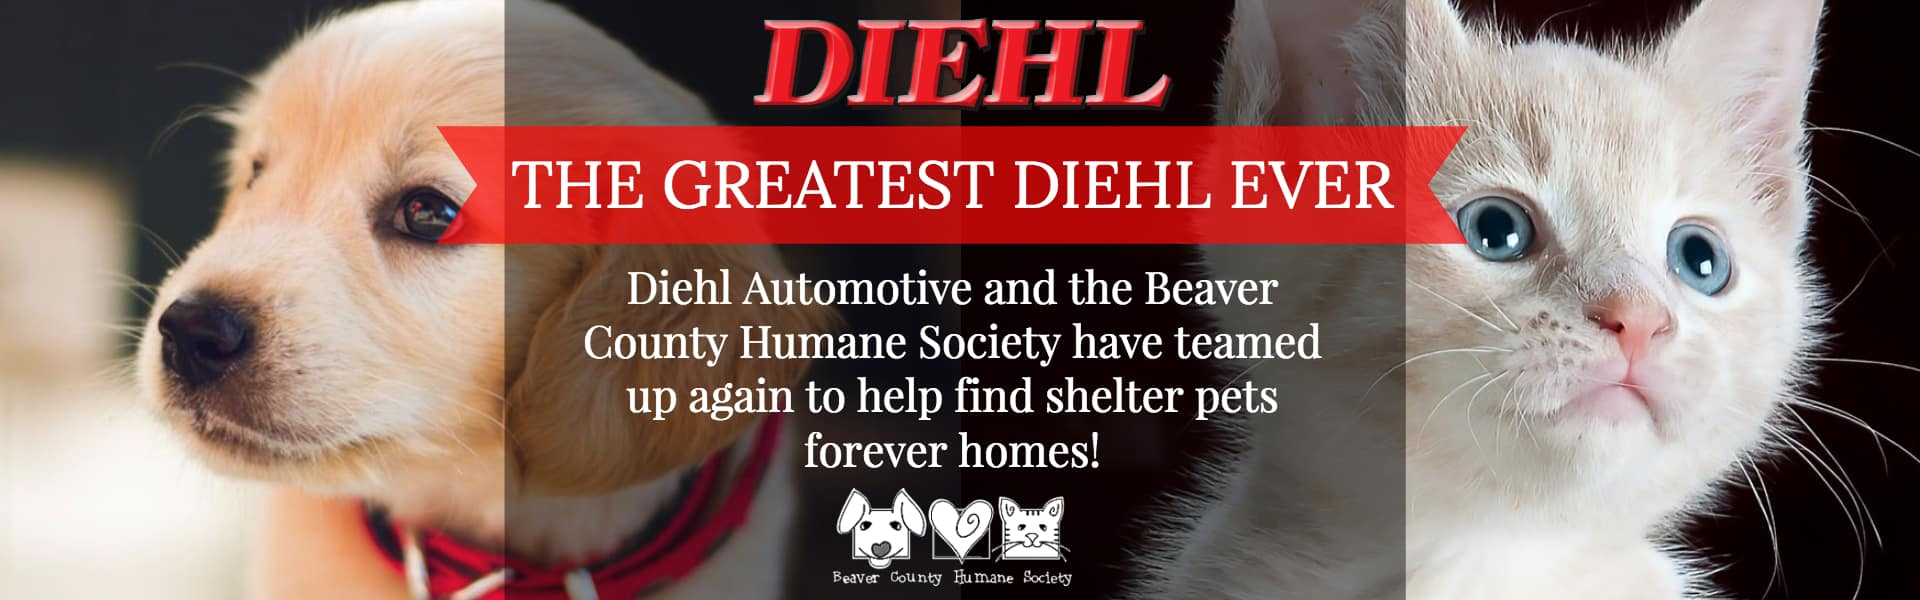 greatest diehl ever diehl automotive beaver county humane society adoption pet rescue dog cat bunny puppy kitty save shelter